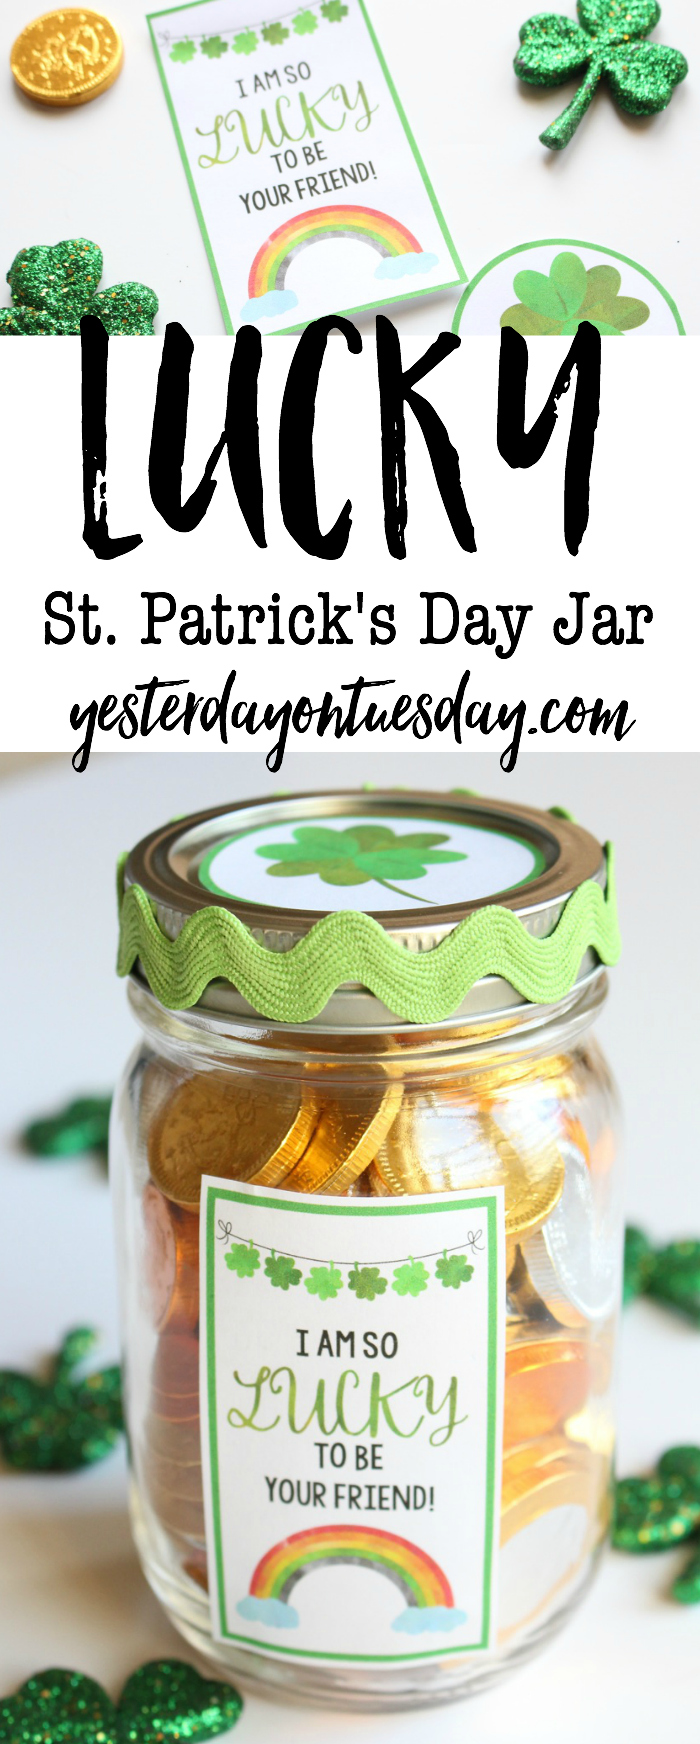 Lucky St. Patrick's Day Jar: Darling mason jar gift for St. Patrick's Day with printable labels.